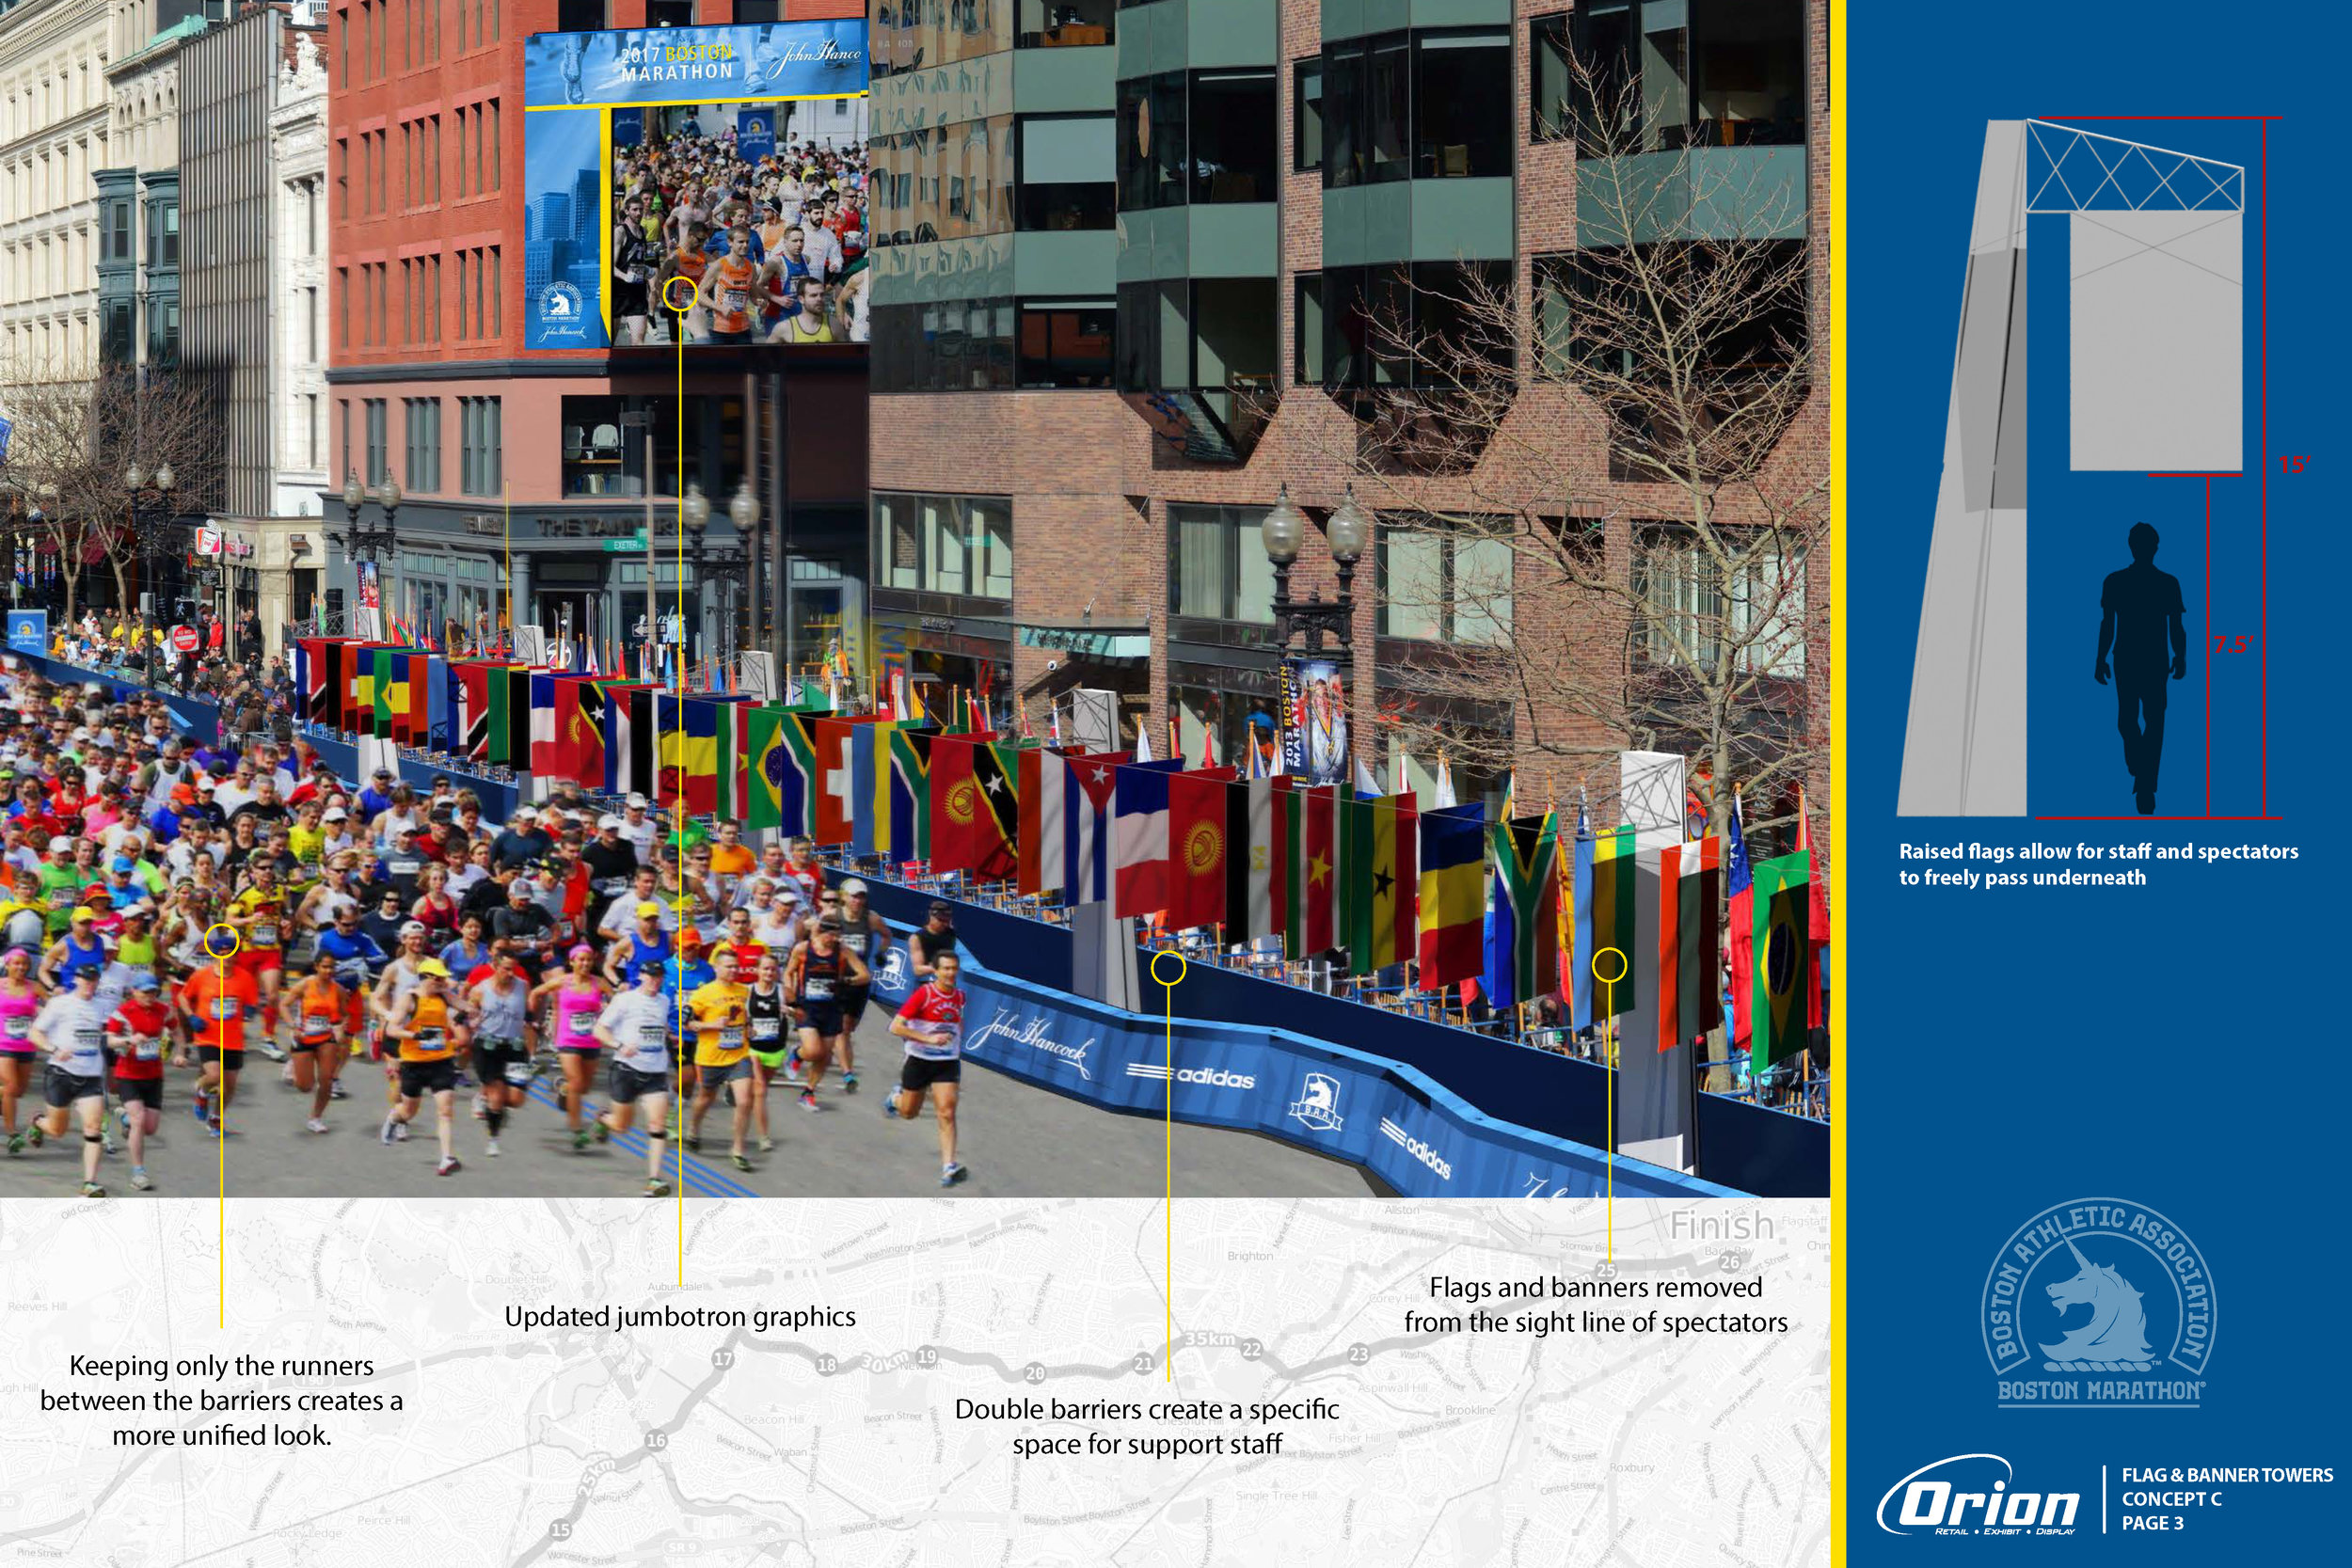 Pages from BostonMarathon%20Presentation_Concept%20C-LR_Page_3.jpg